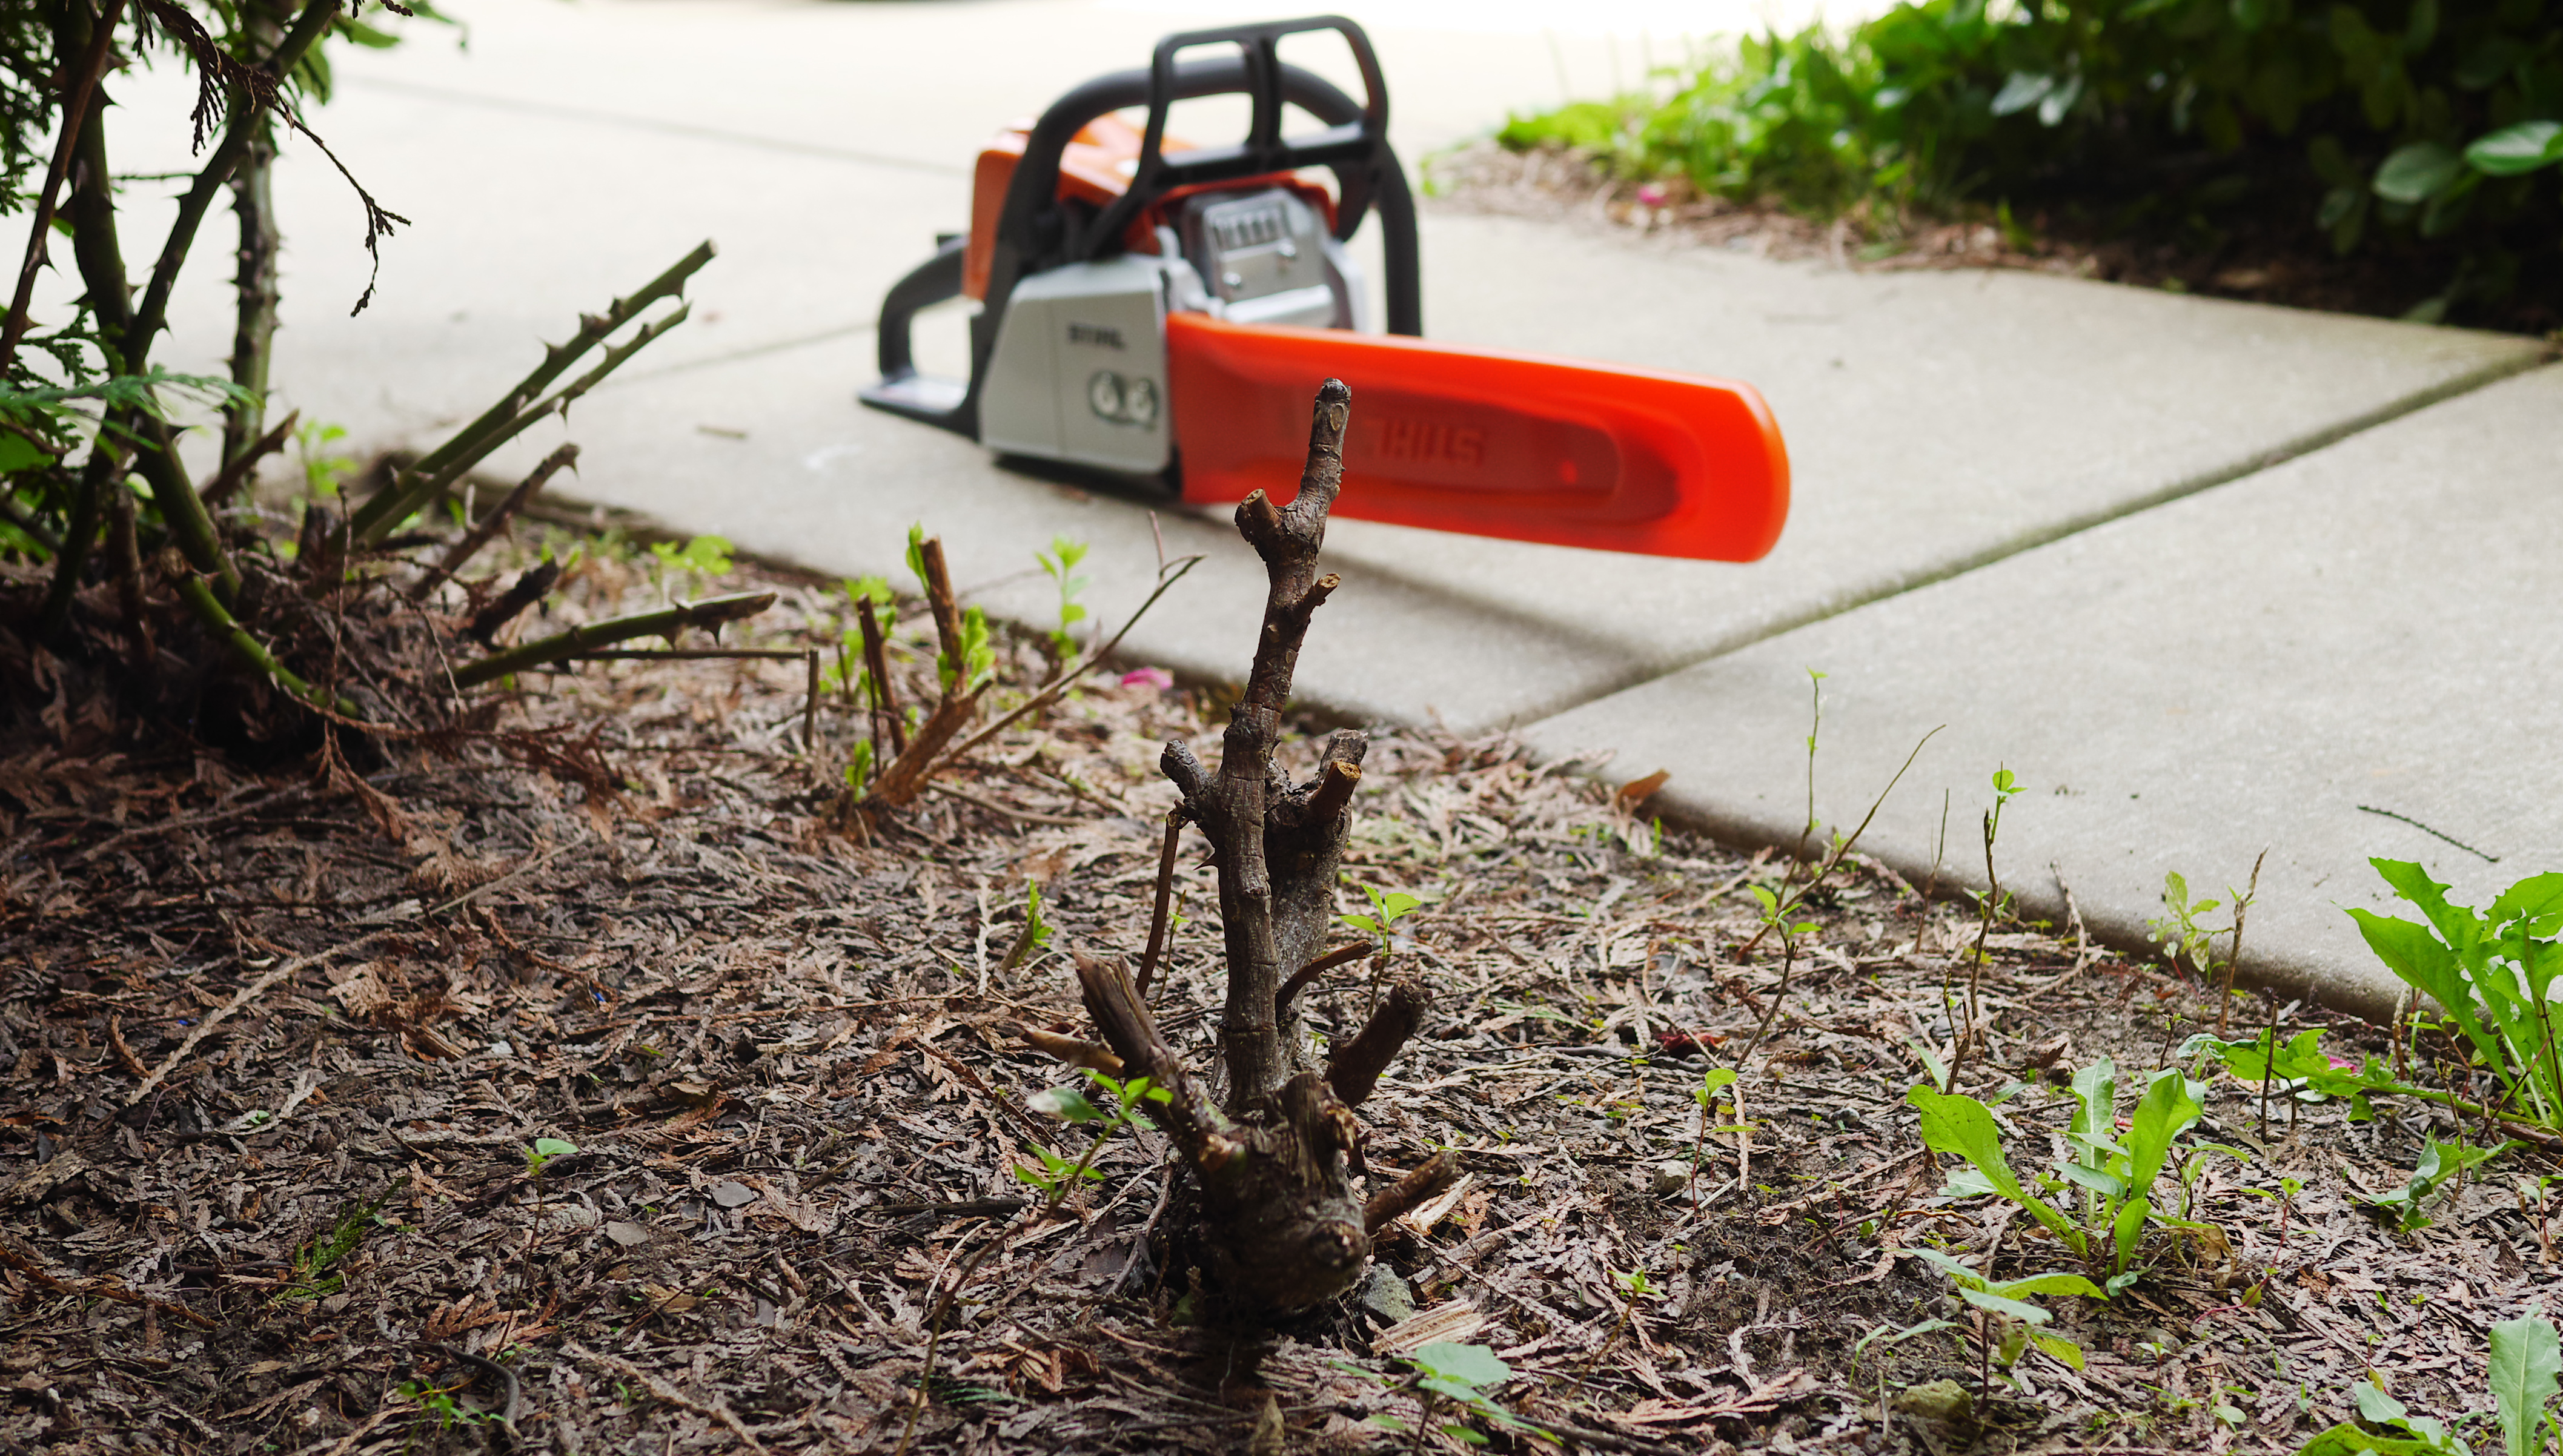 Summer Landscaping summer landscaping with the stihl ms 170 chainsaw - theresa's reviews